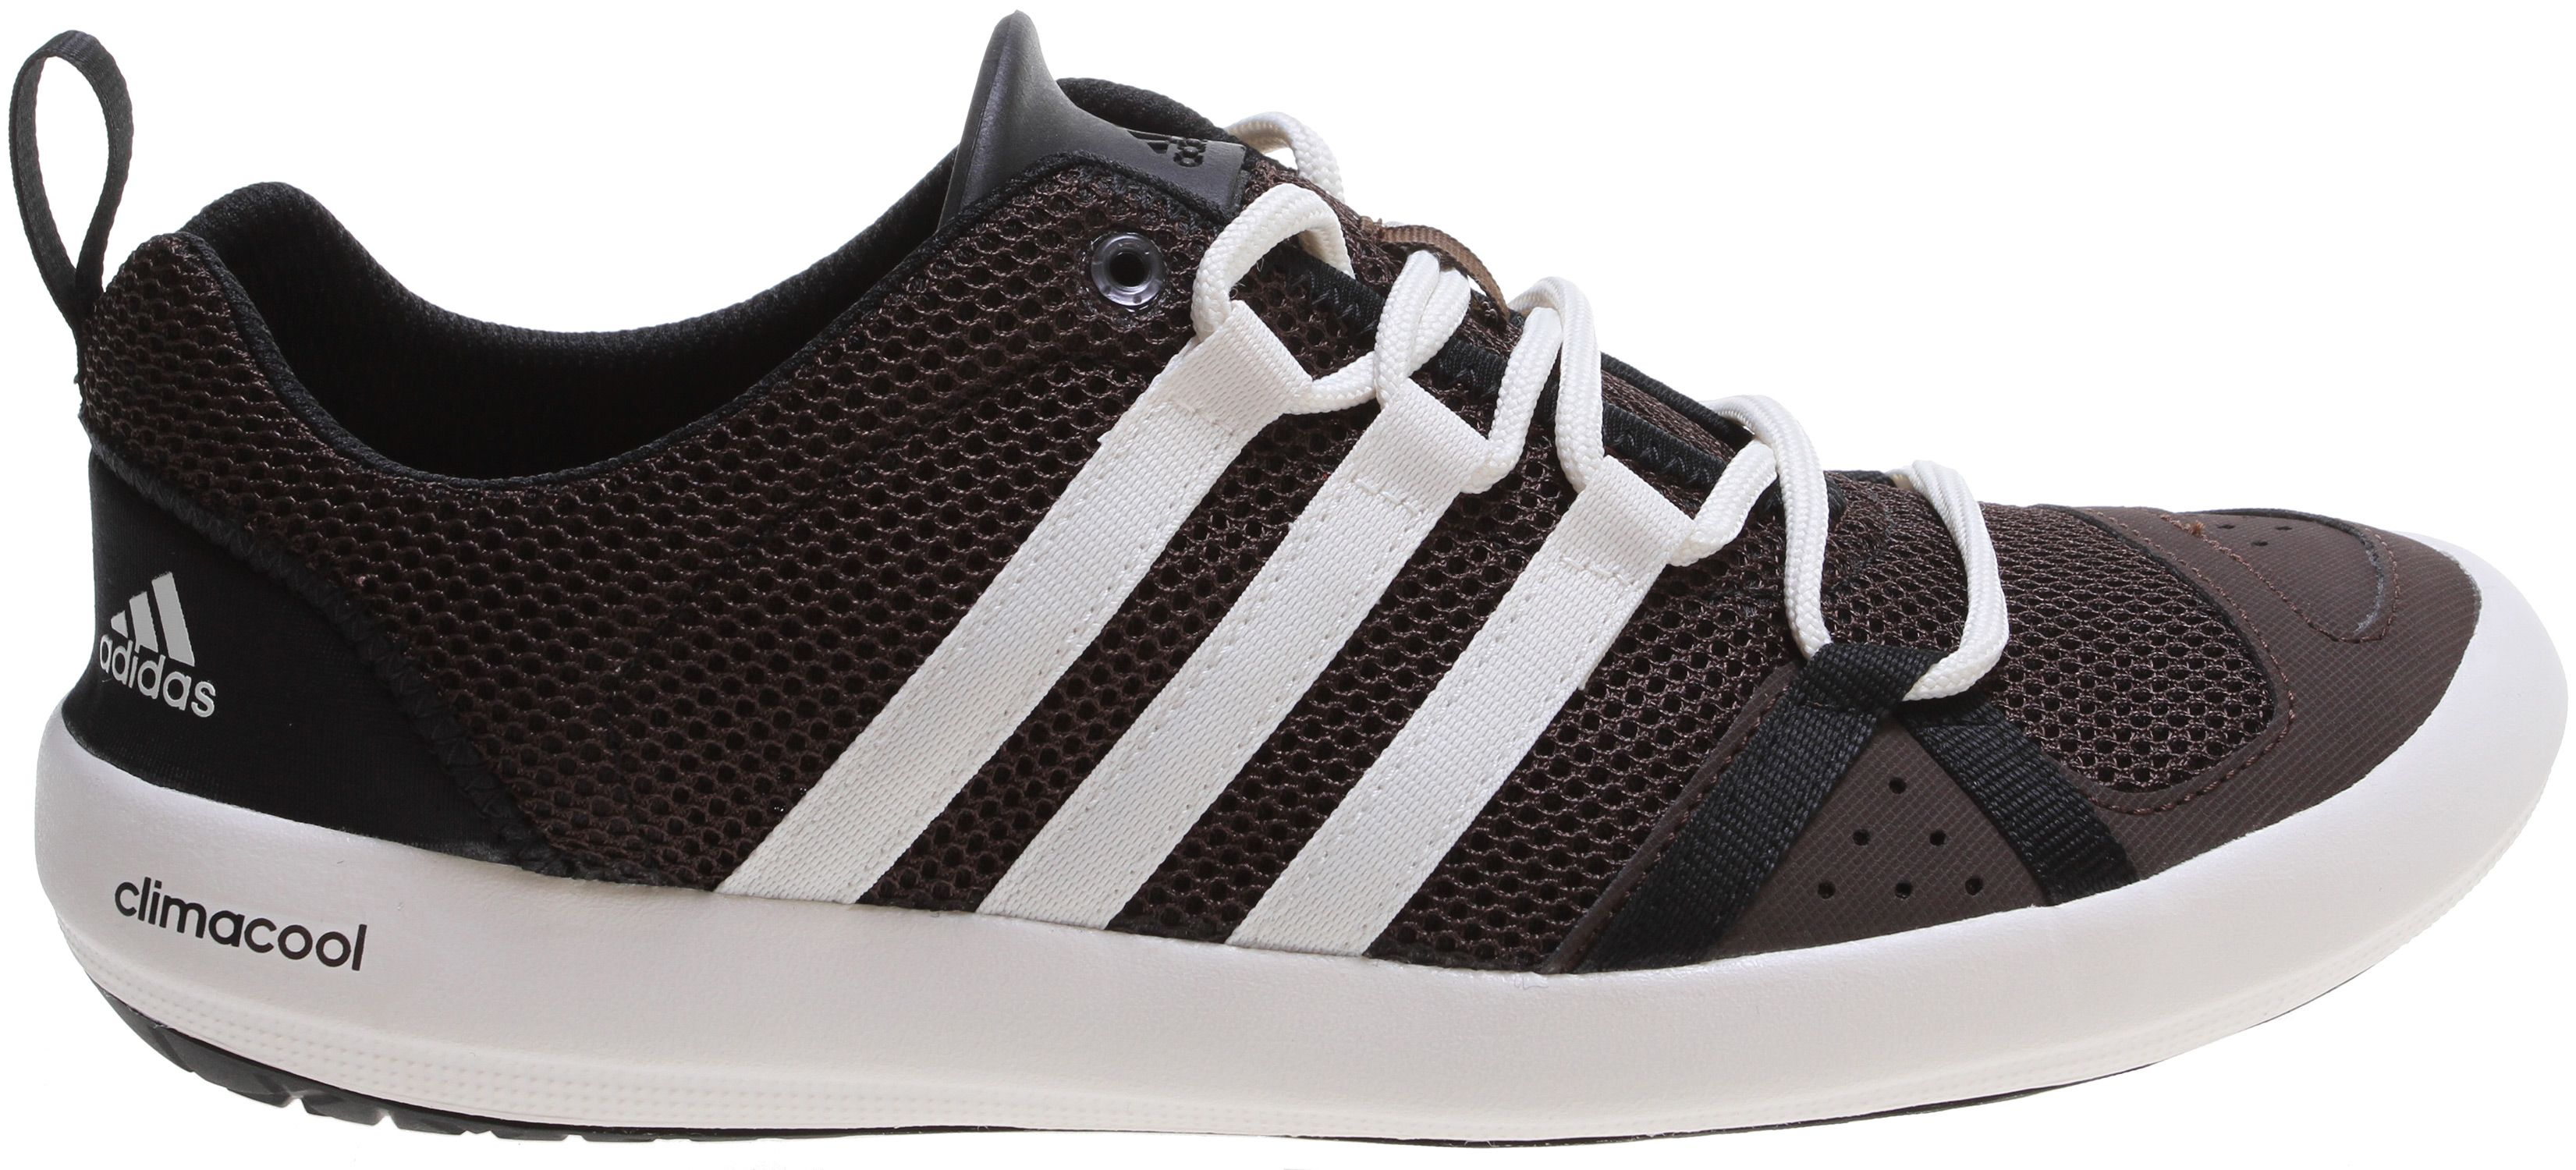 huge selection of b4b84 84560 GearCloset.net - Adidas Climacool Boat Lace Water Shoes Mustang BrownChalk Black